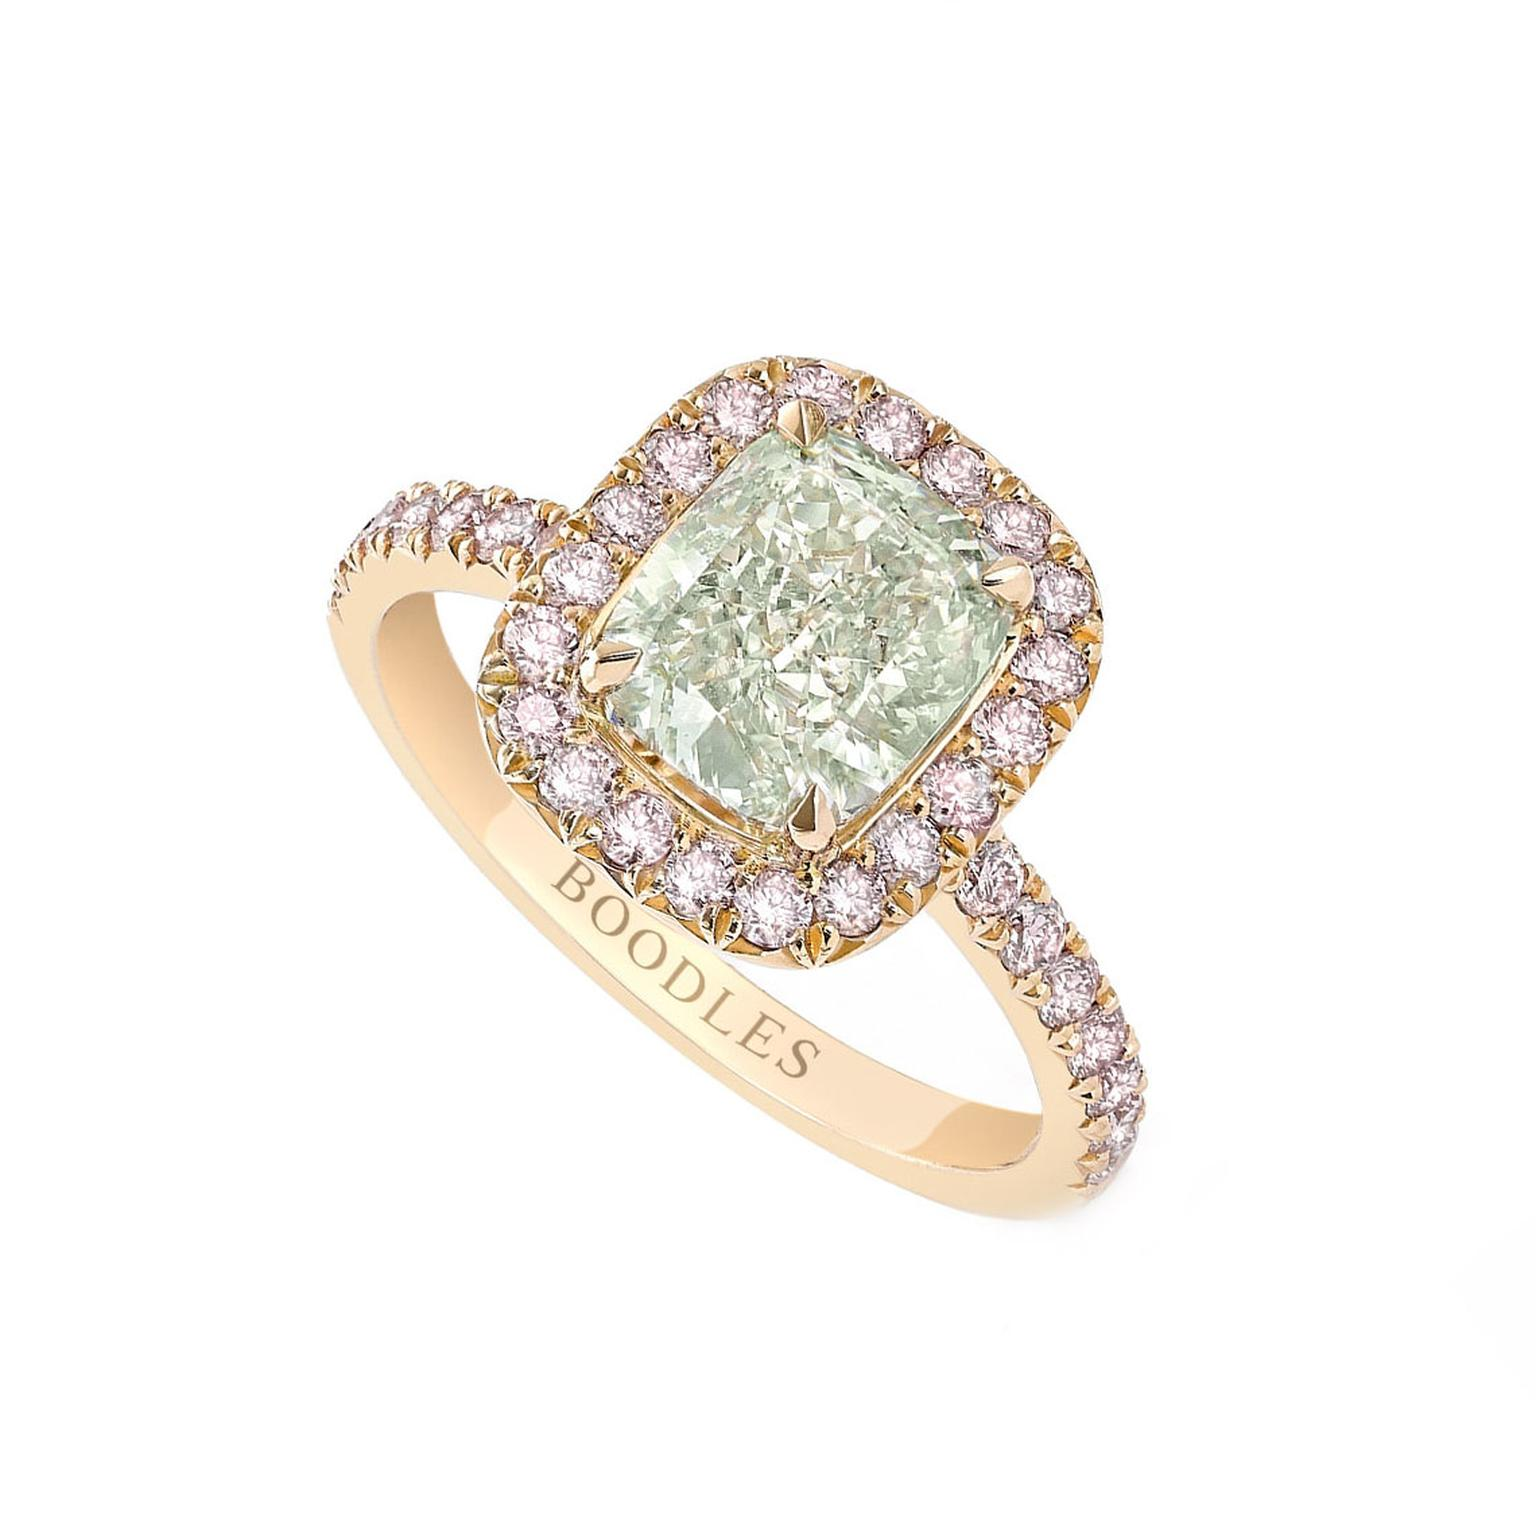 My favourite engagement rings of 2016